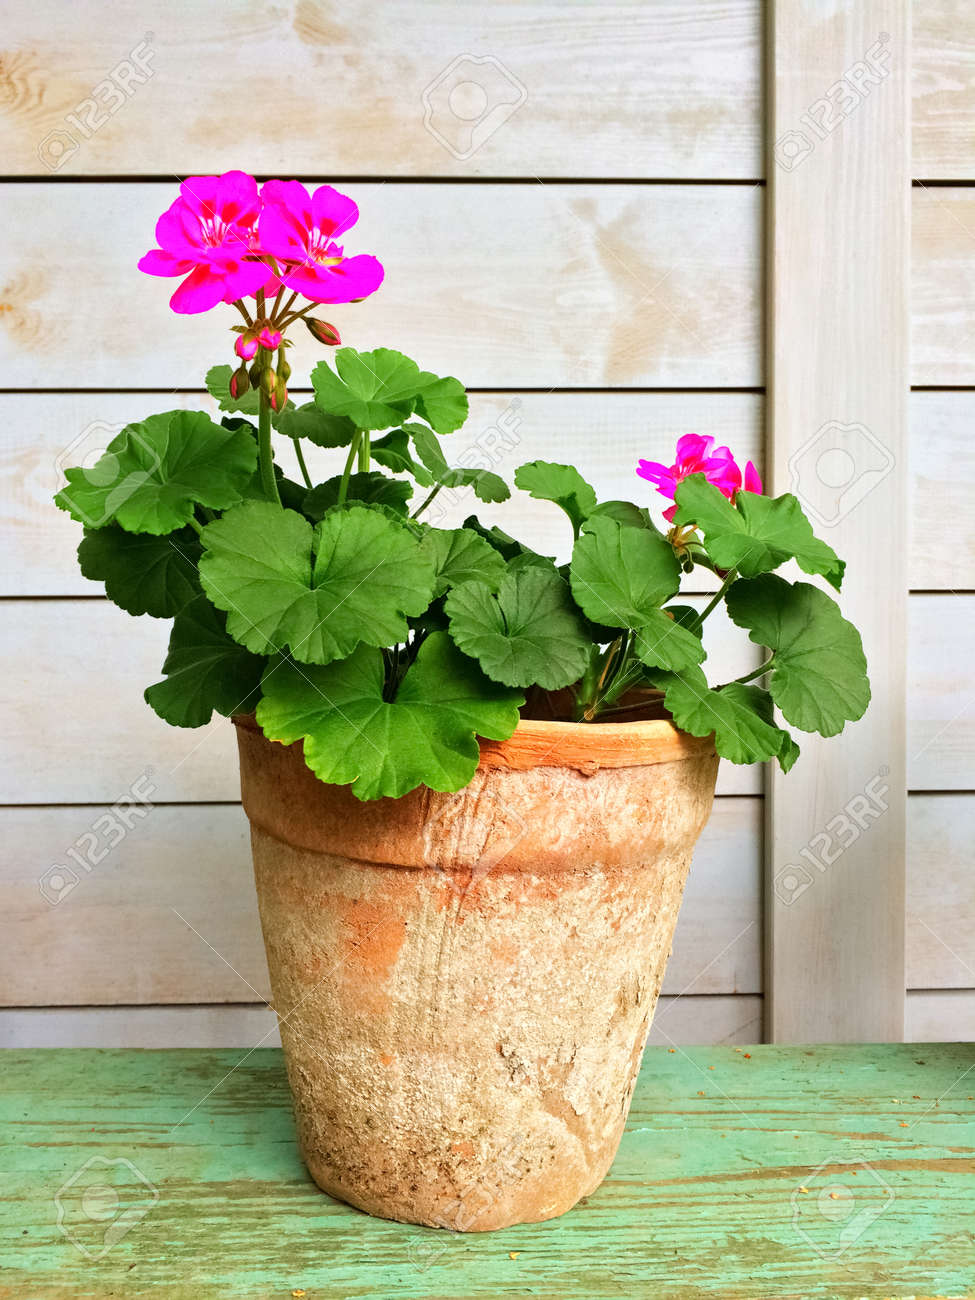 Blooming geranium in old clay pot, garden decoration.